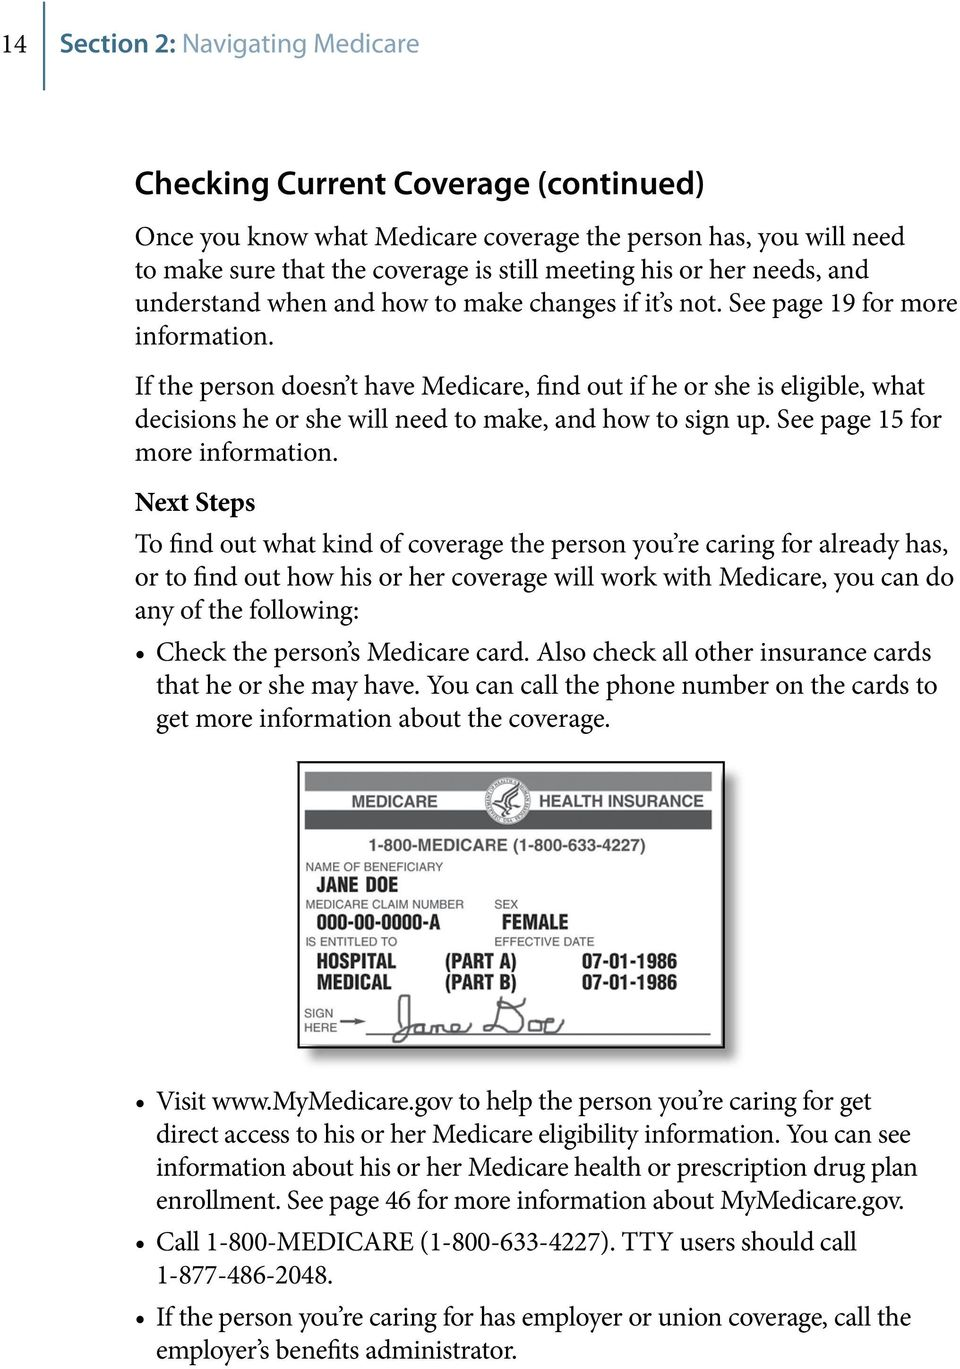 If the person doesn t have Medicare, find out if he or she is eligible, what decisions he or she will need to make, and how to sign up. See page 15 for more information.